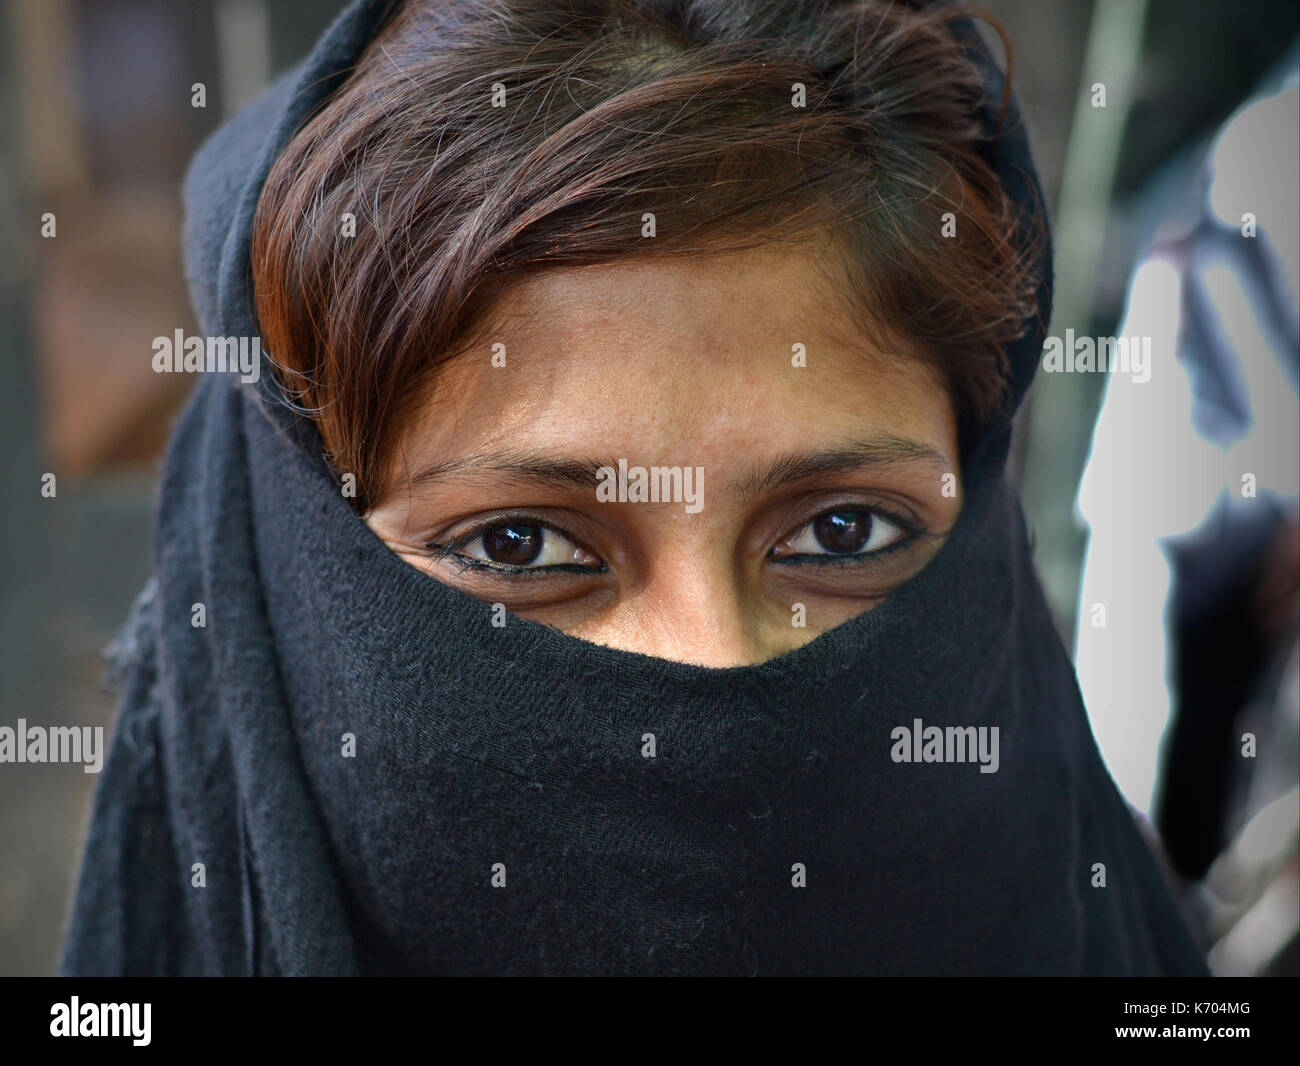 Young Indian Muslimah with smiling eyes and casual black niqab; Ahmedabad, Gujarat, Western India - Stock Image